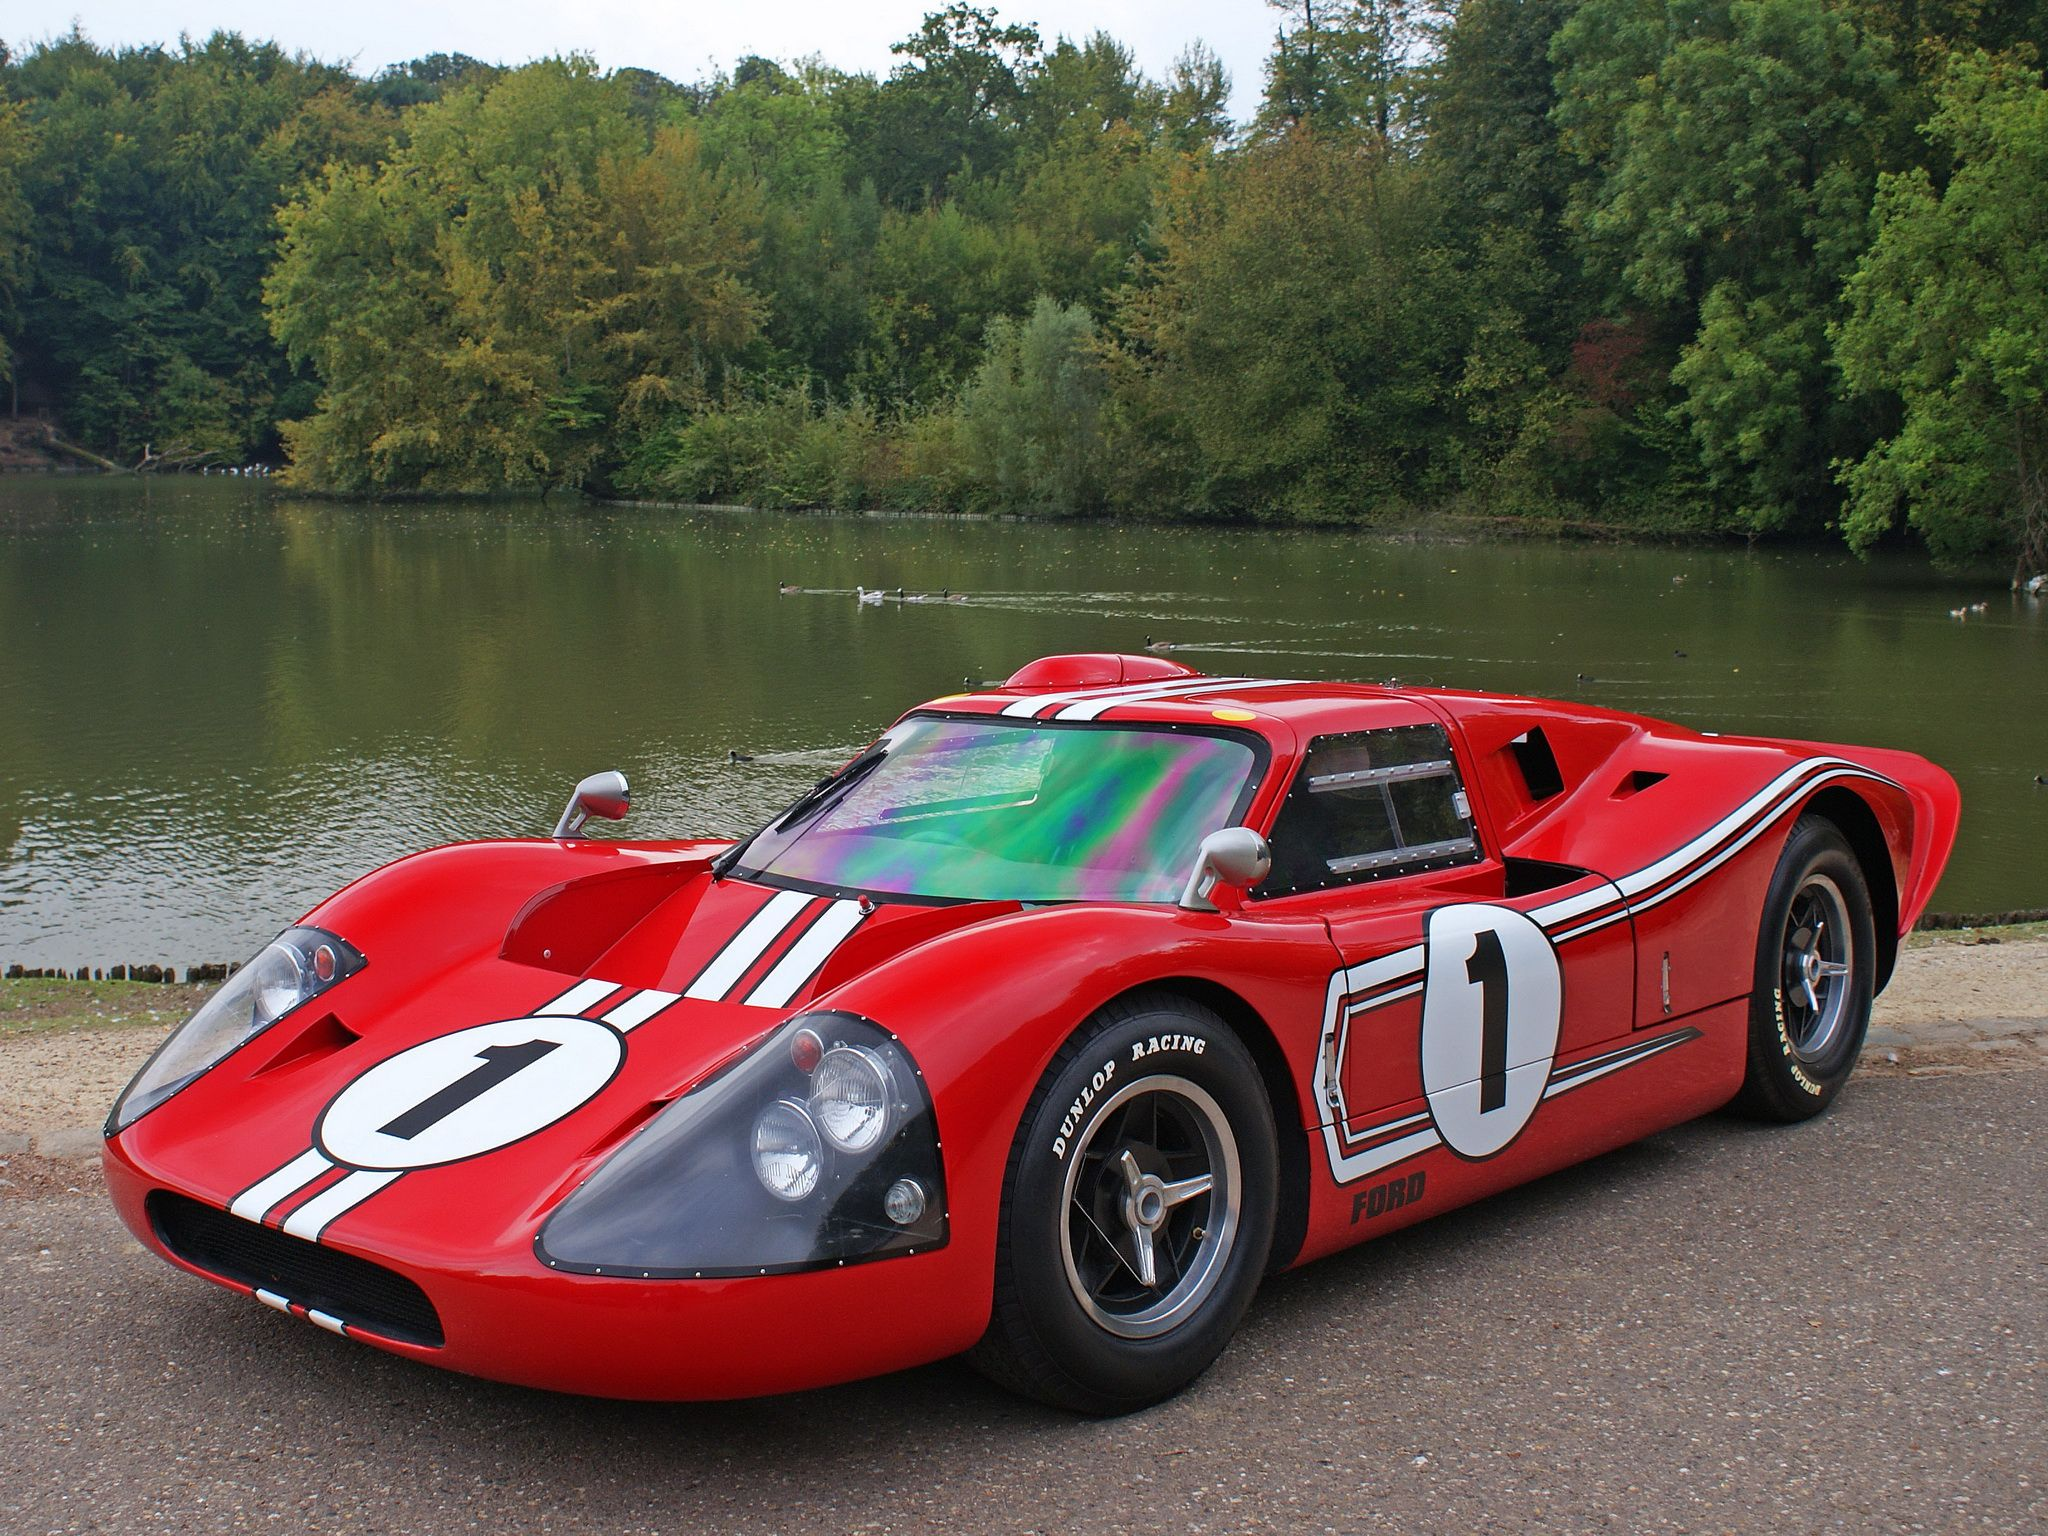 Ford Gt Mkiv One Of The Most Famous Cars In Racing History